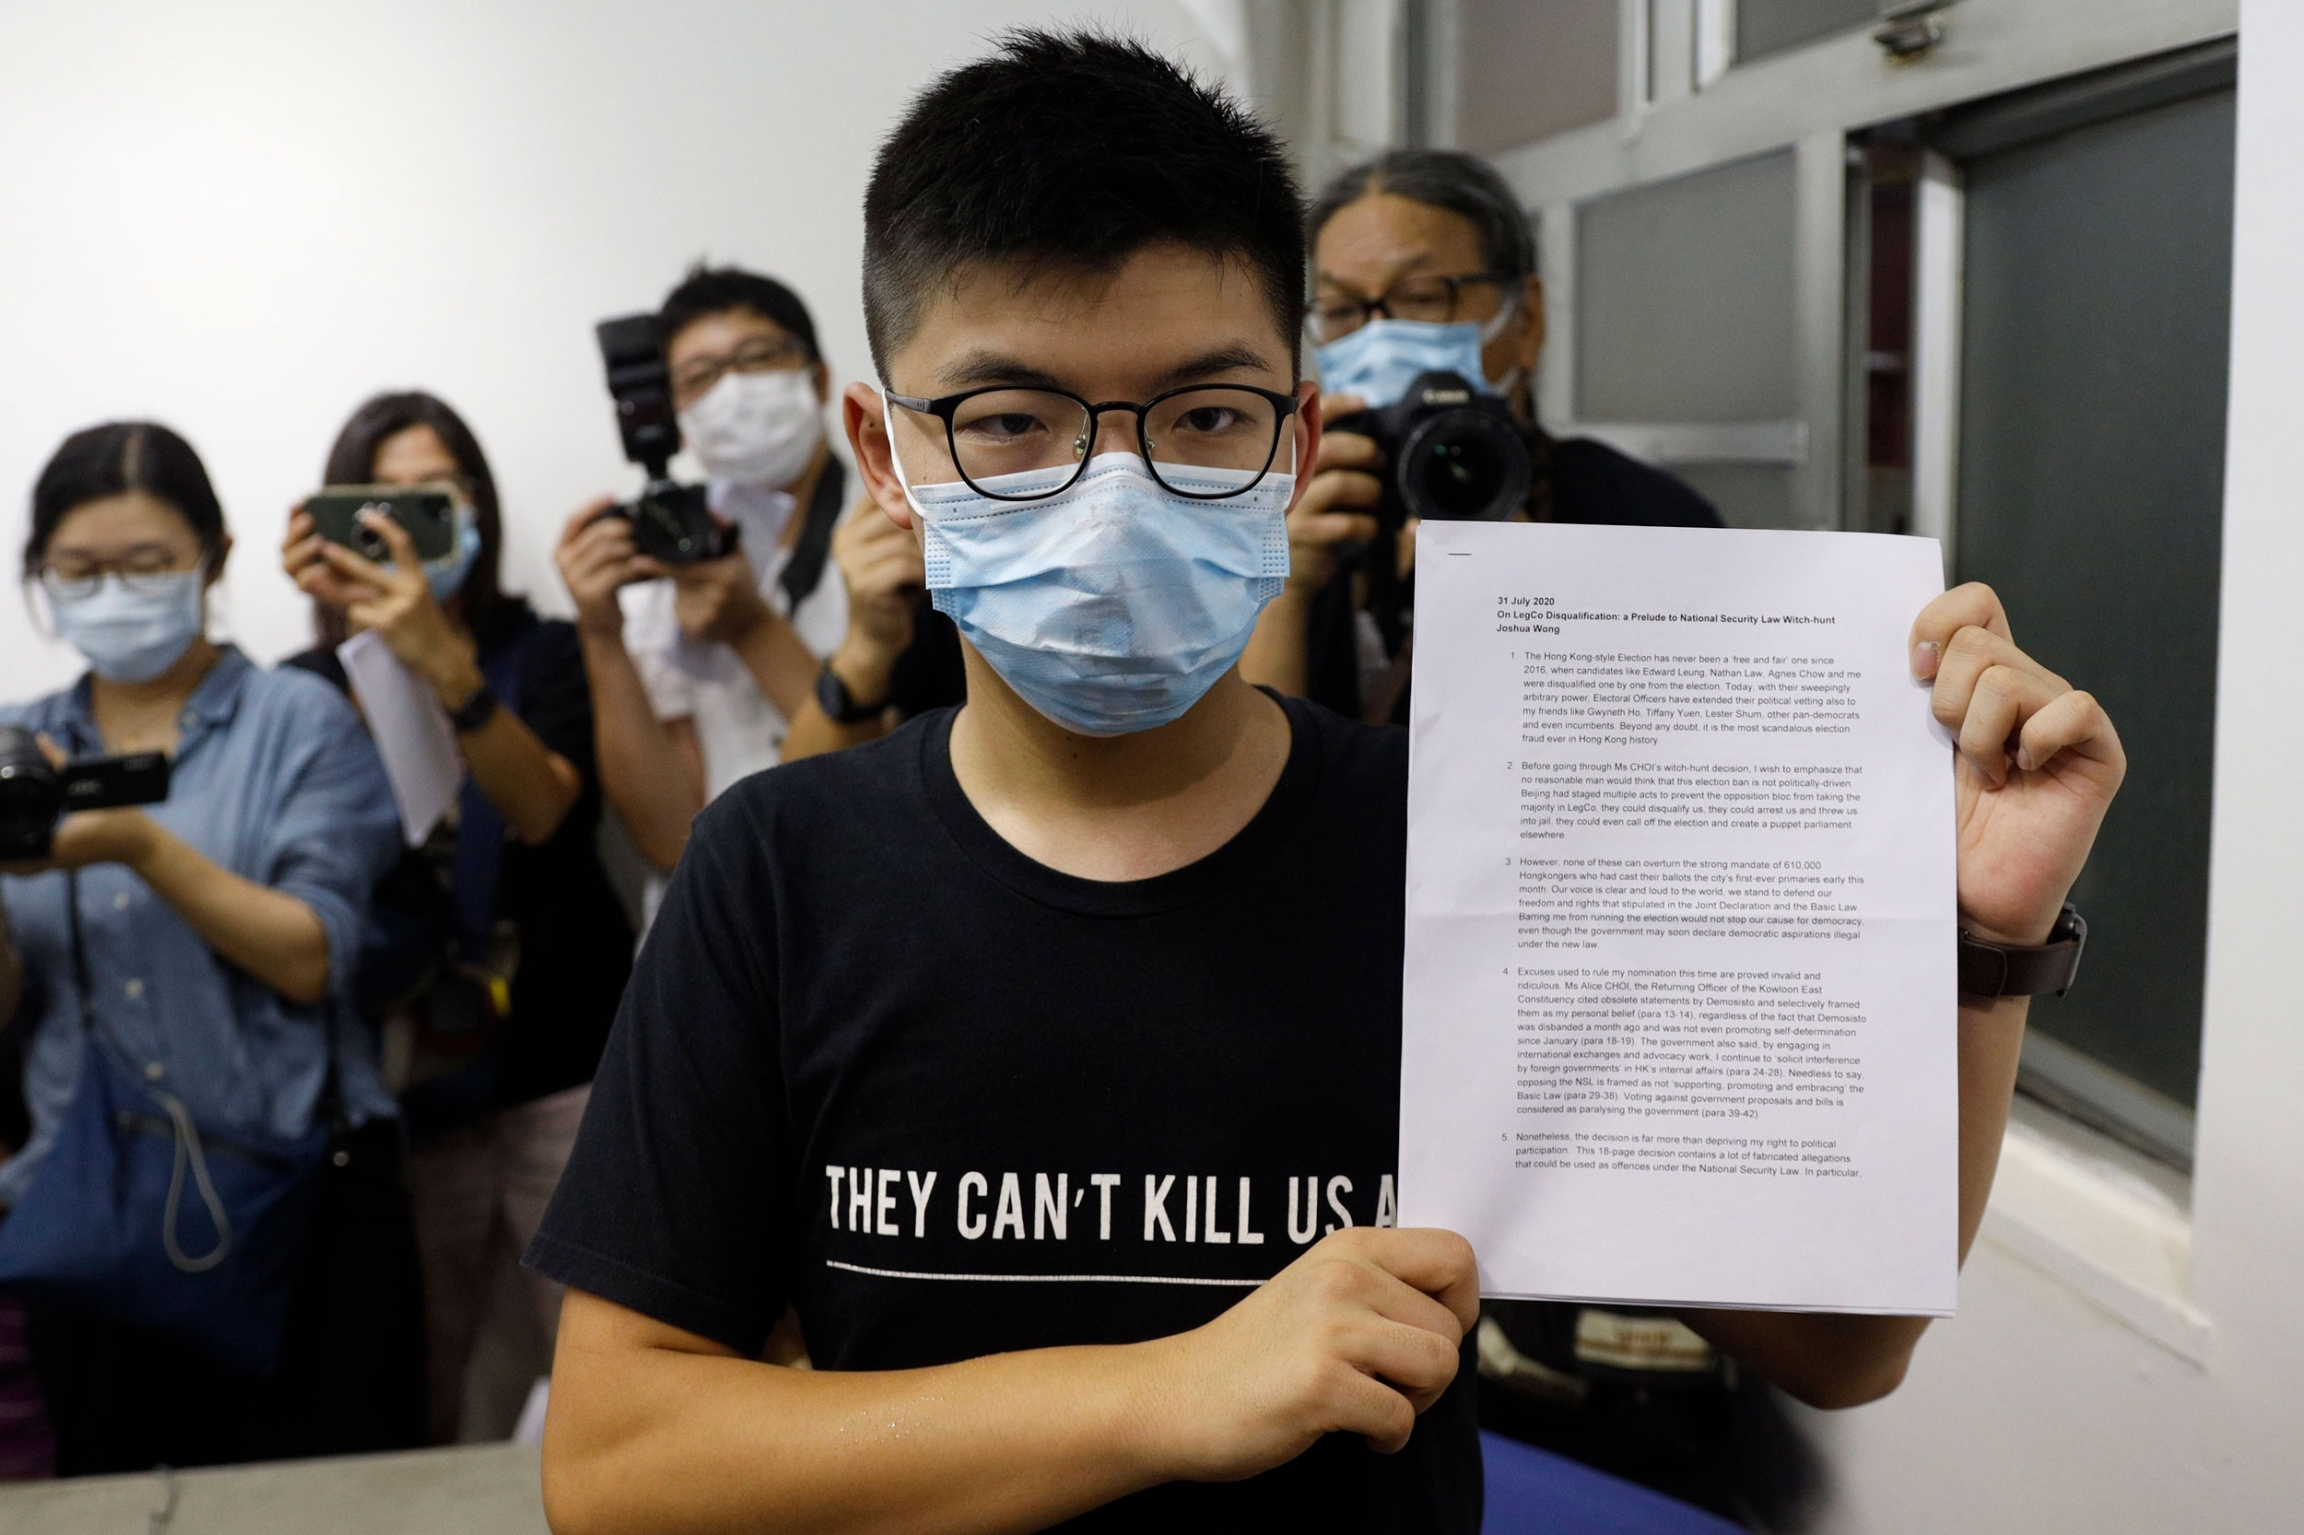 Hong Kong pro-democracy activist Joshua Wong is shown wearing a face mask a glasses while holding a white document up to the camera.